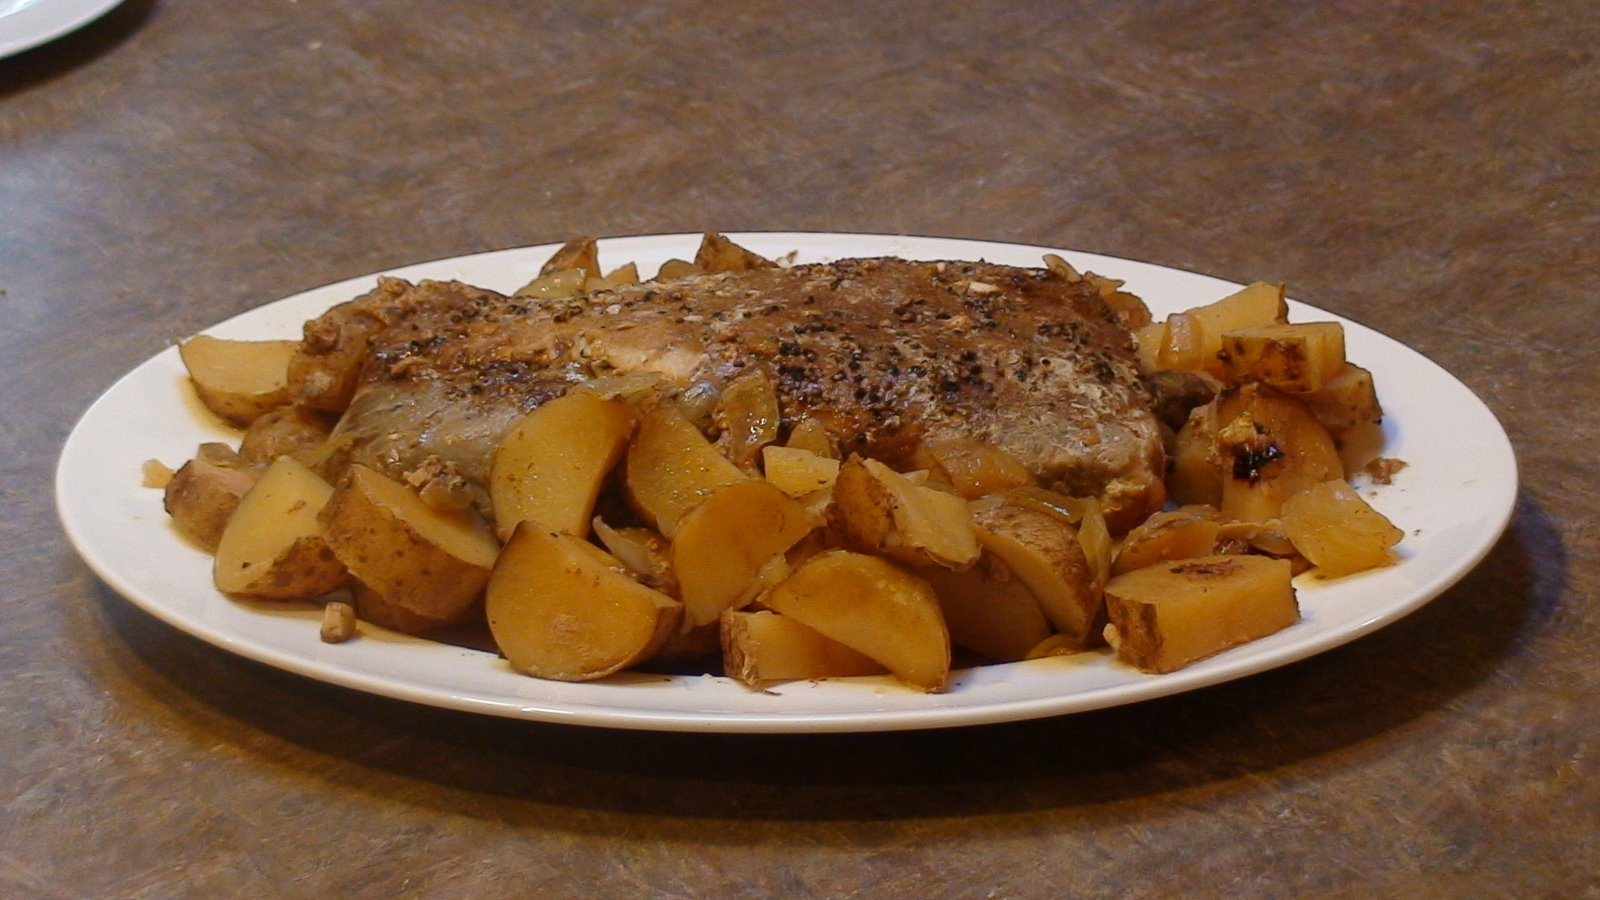 Slow Cooker Pork Roast with Tomatoes, Onions and Potatoes